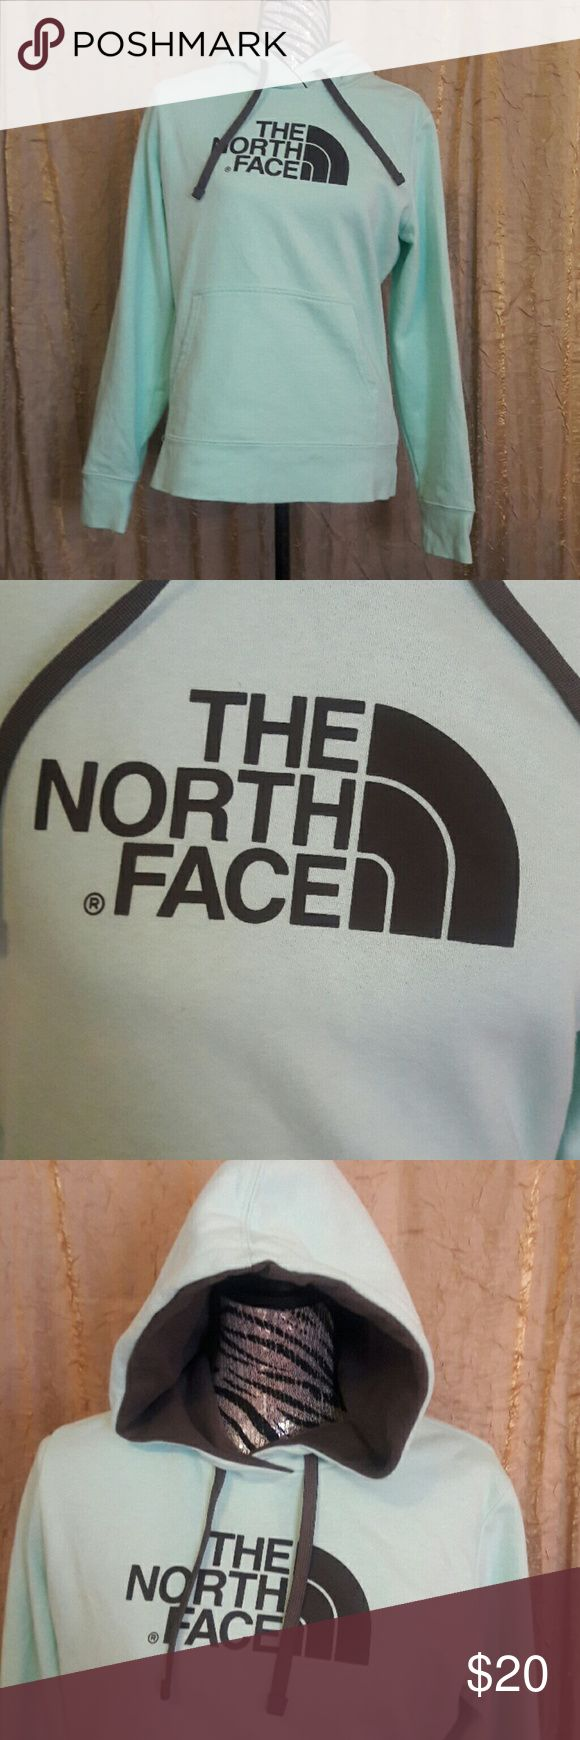 North Face sweat shirt Size medium mint green North Face hooded sweatshirt. Has a pocket. 80% cotton and 20% polyester. Wash inside out. North Face Tops Sweatshirts & Hoodies